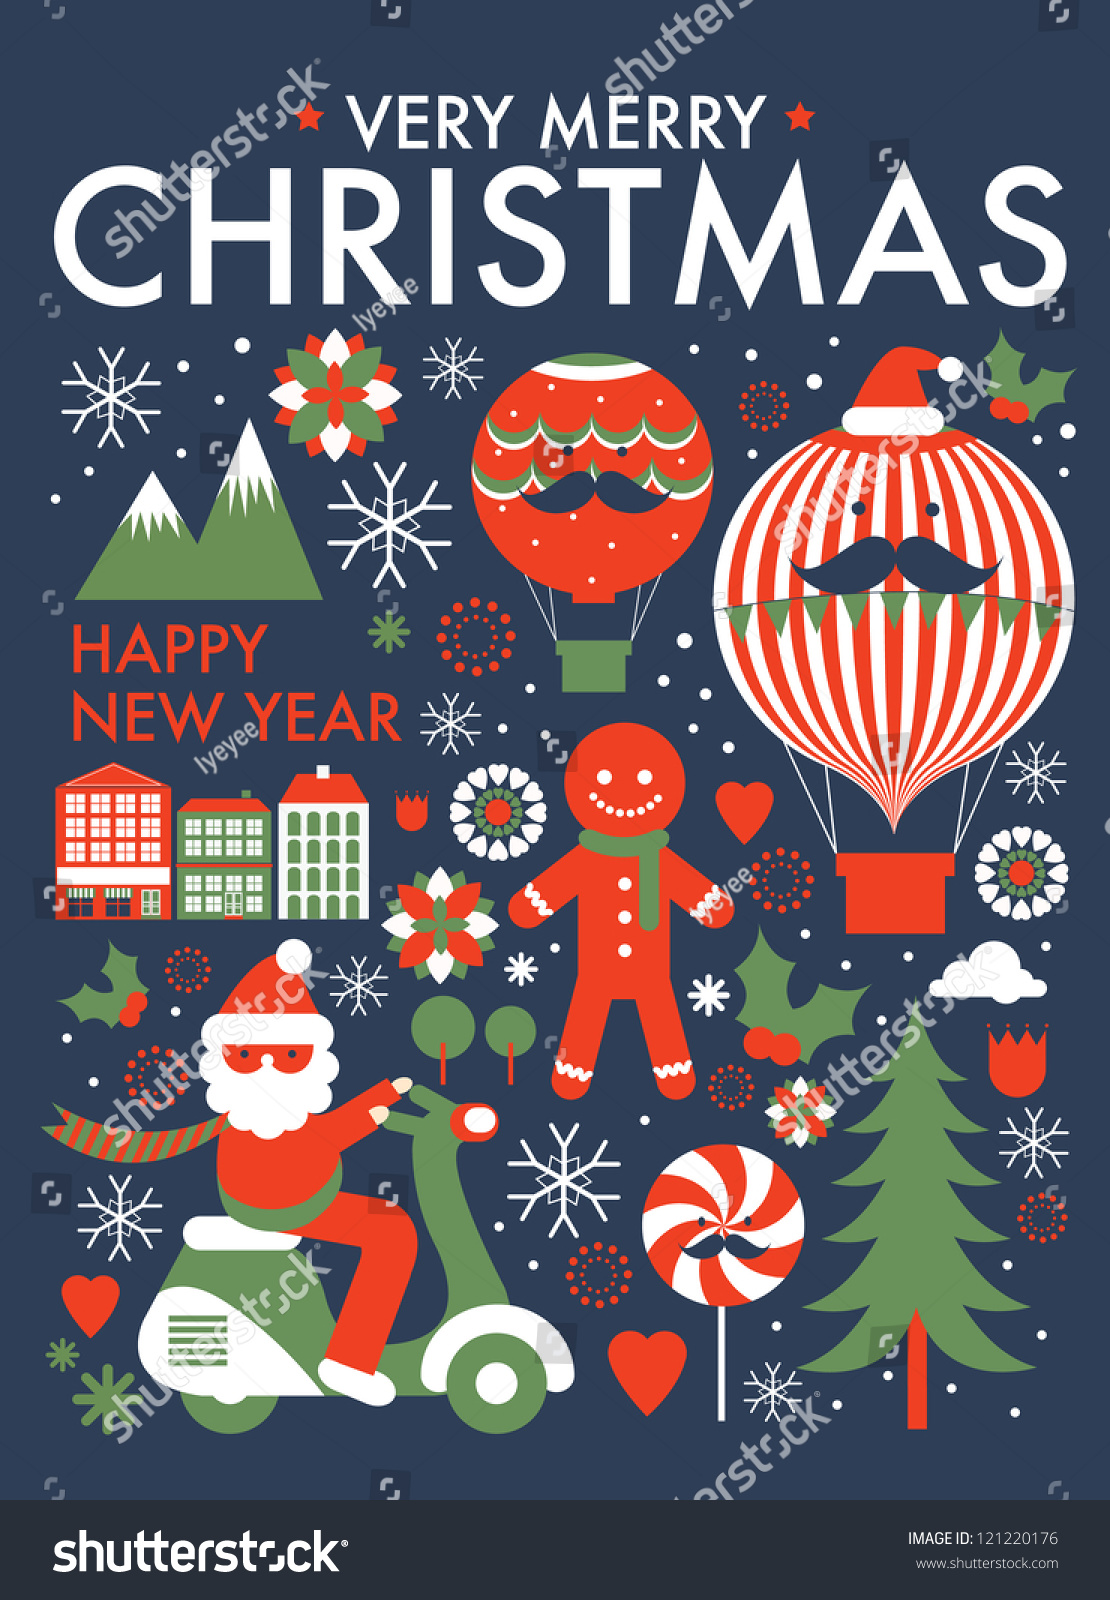 christmas greeting card poster template vector illustration christmas greeting card poster template vector illustration preview save to a lightbox